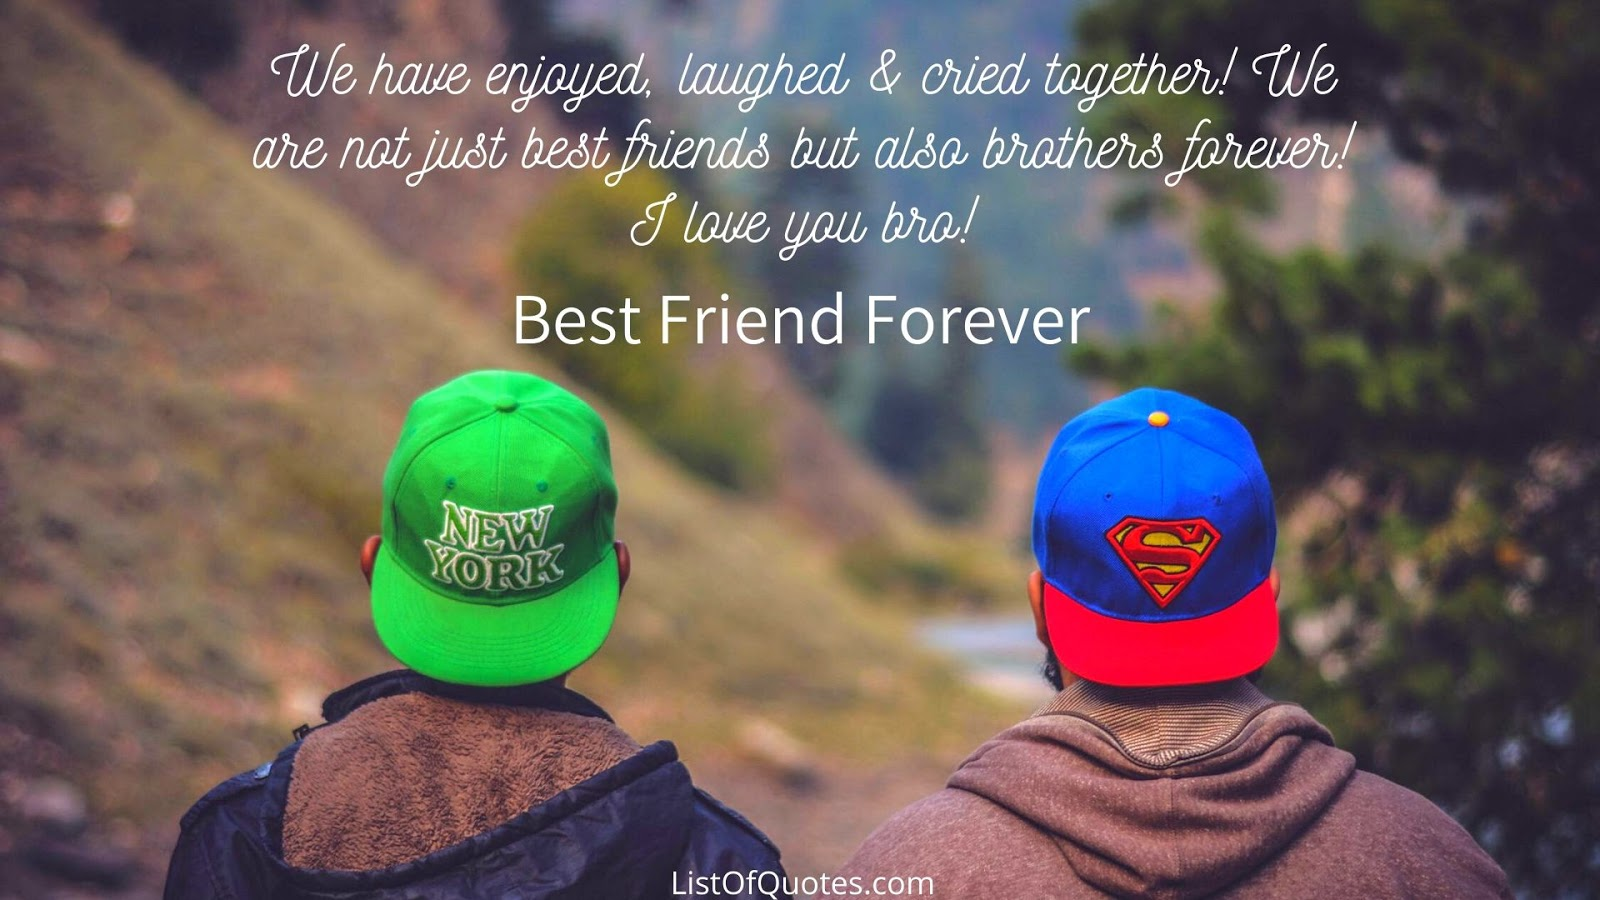 best friendship day quotes that make you cry HD images free download